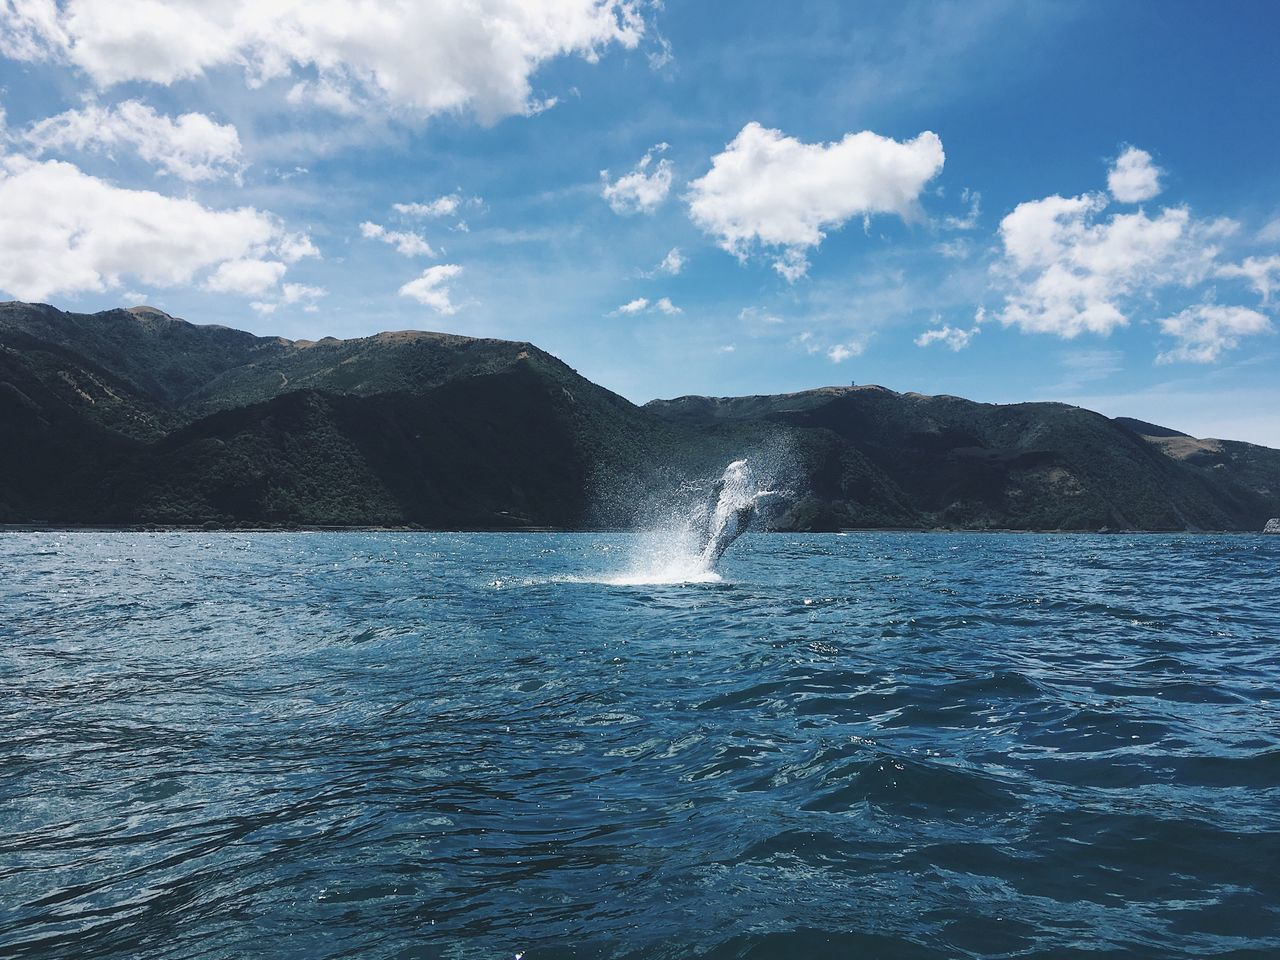 Whale Splash Beauty In Nature Sea One Animal Swimming Aquatic Mammal Day Outdoors Kaikoura New Zealand